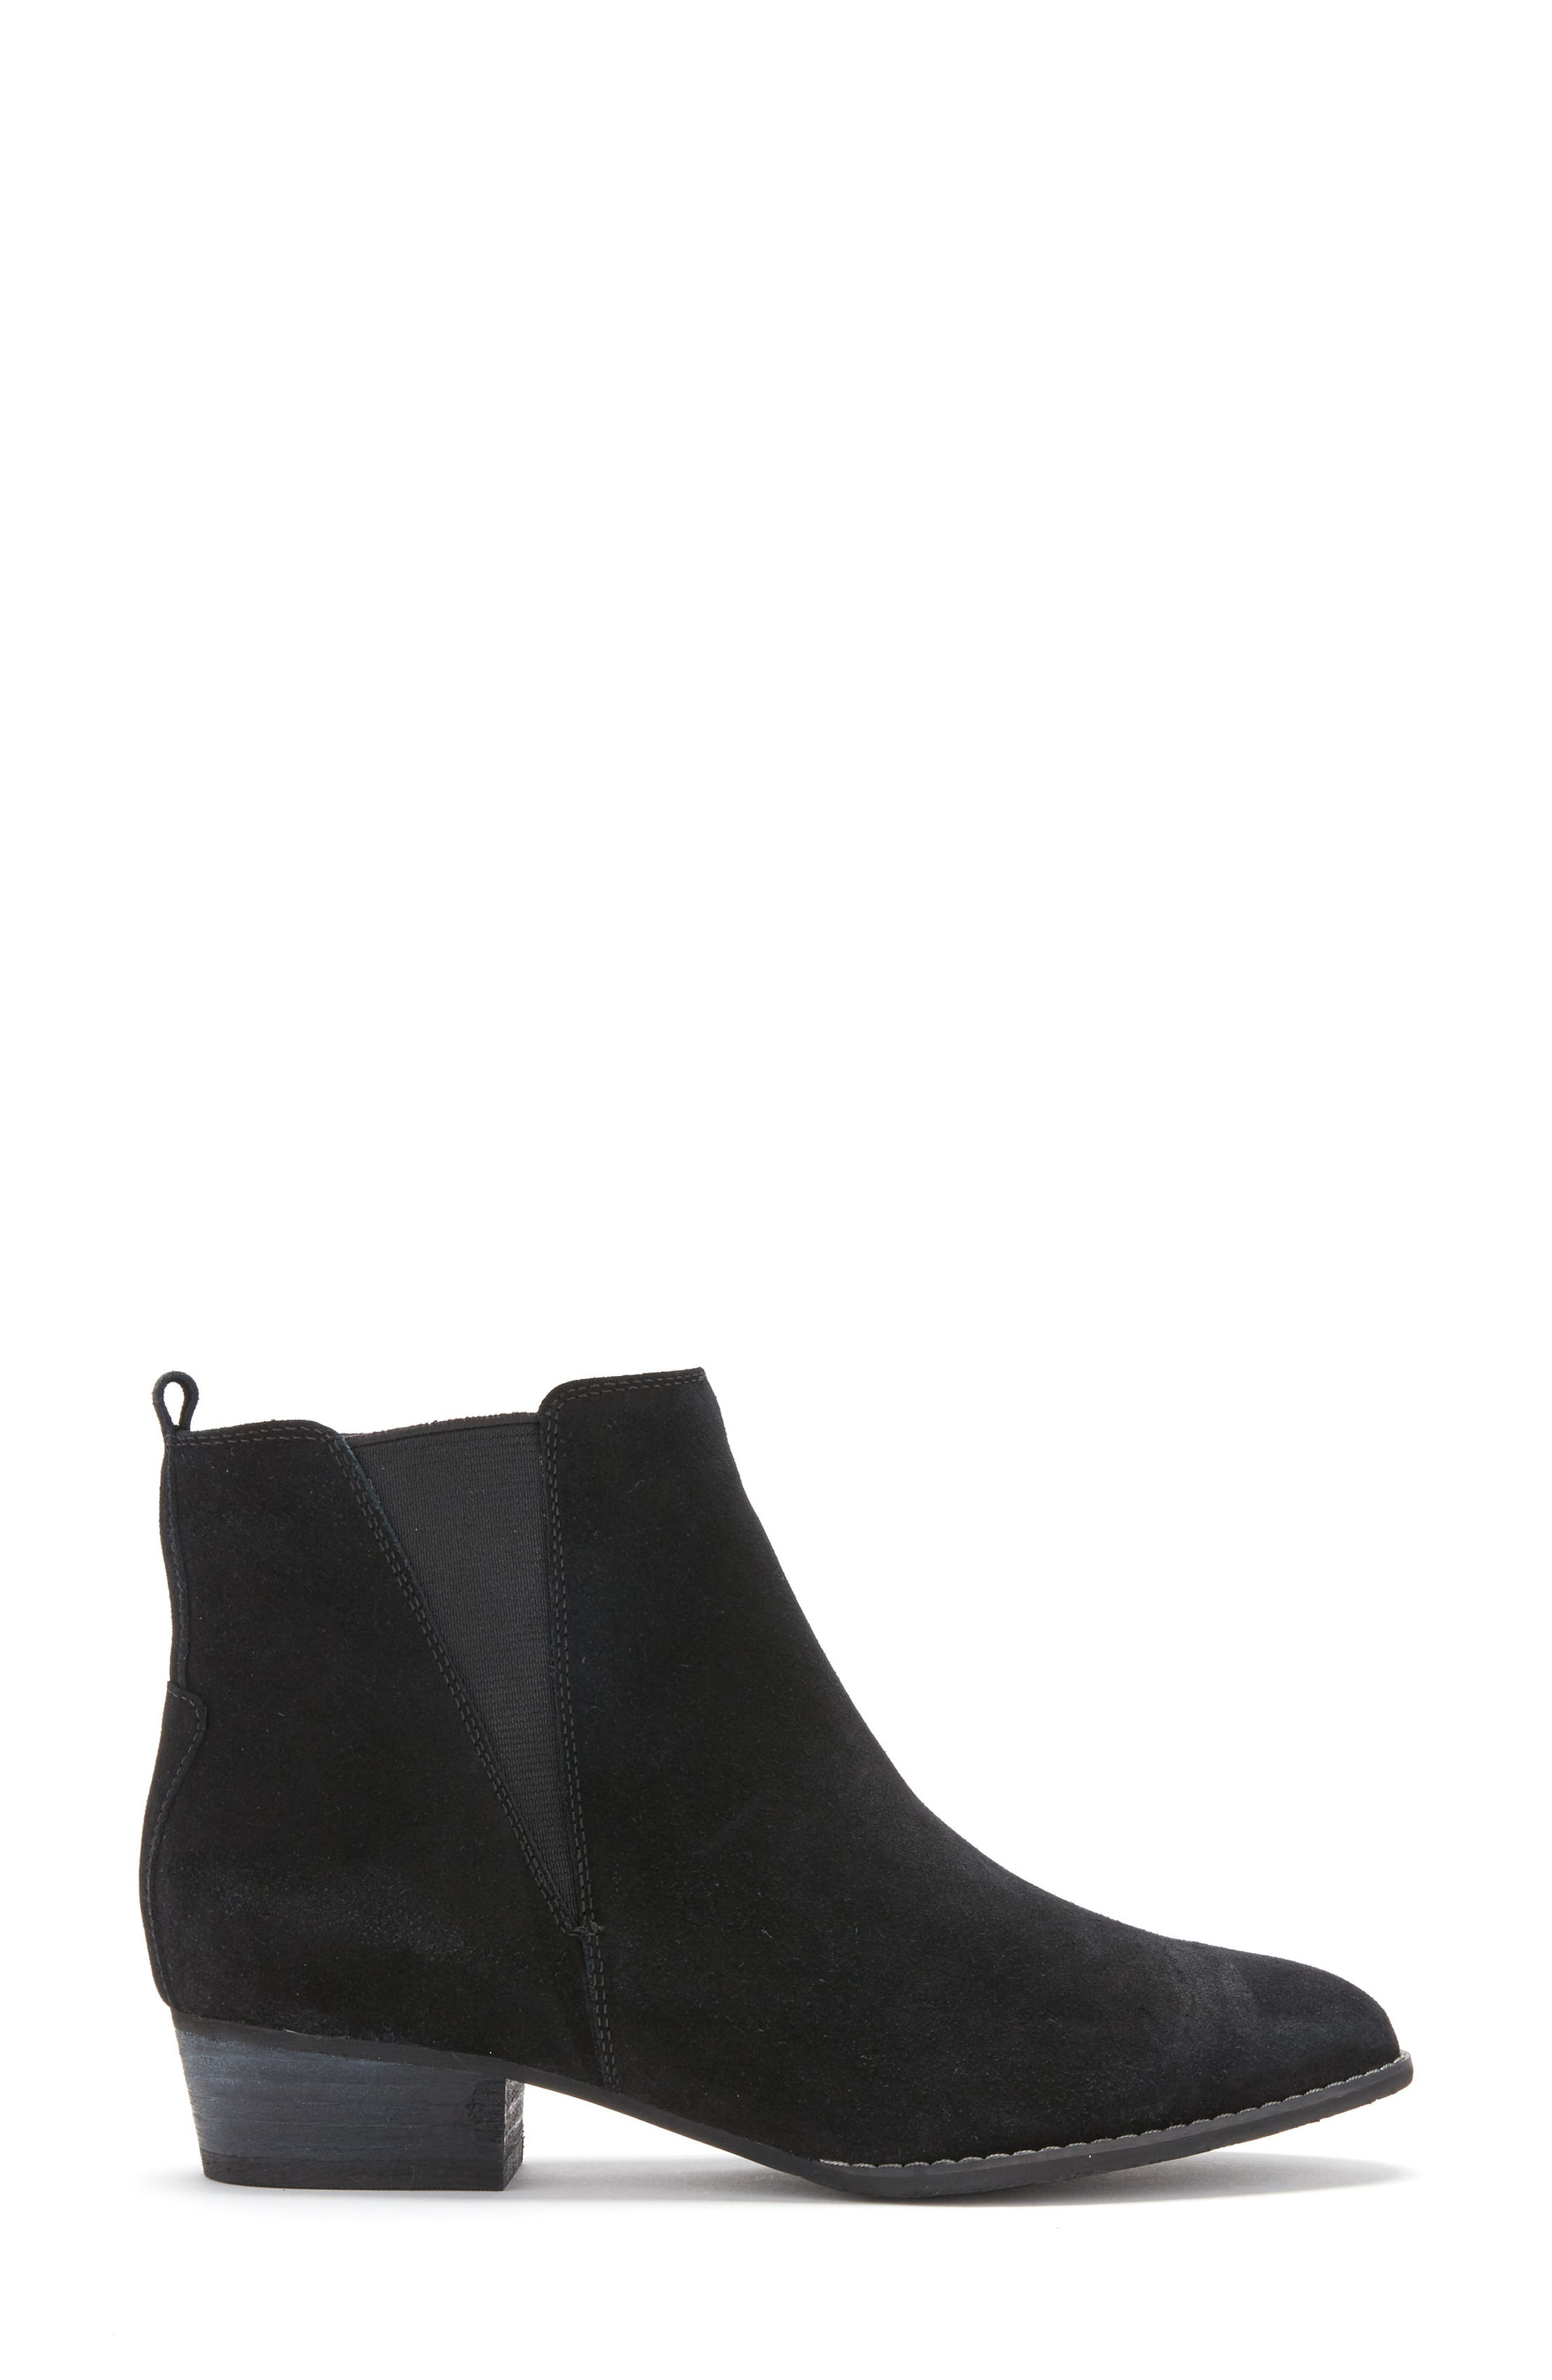 Loxx Waterproof Bootie,                             Alternate thumbnail 3, color,                             006